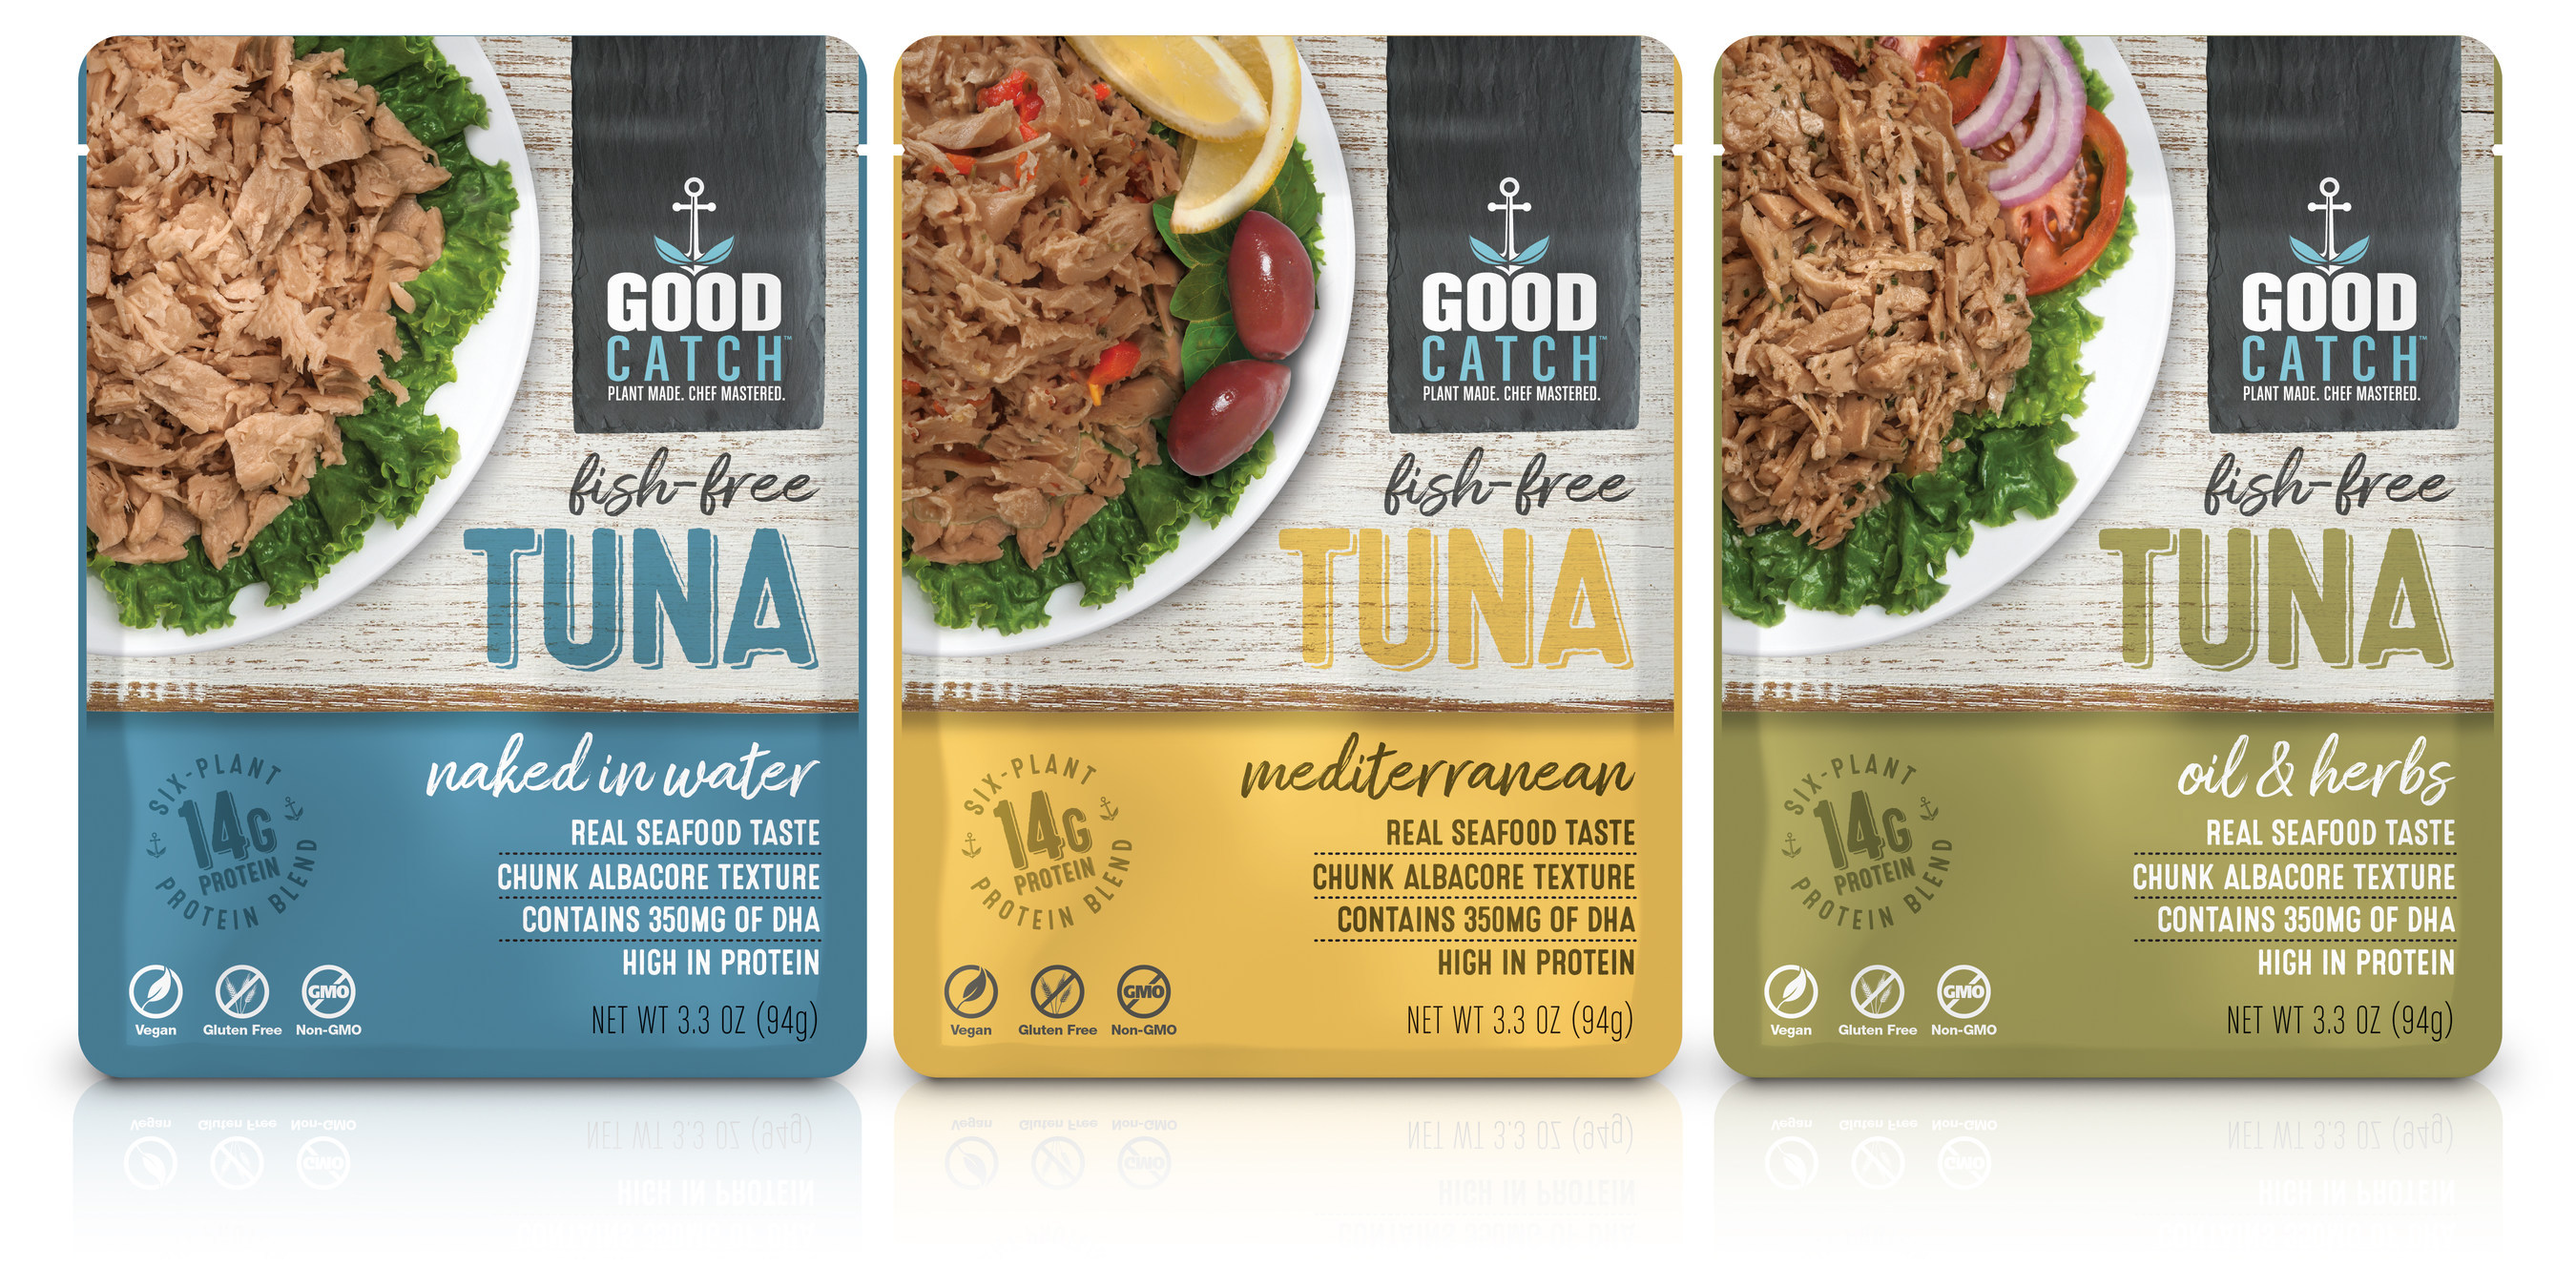 Good Catch plant-based sustainable seafood